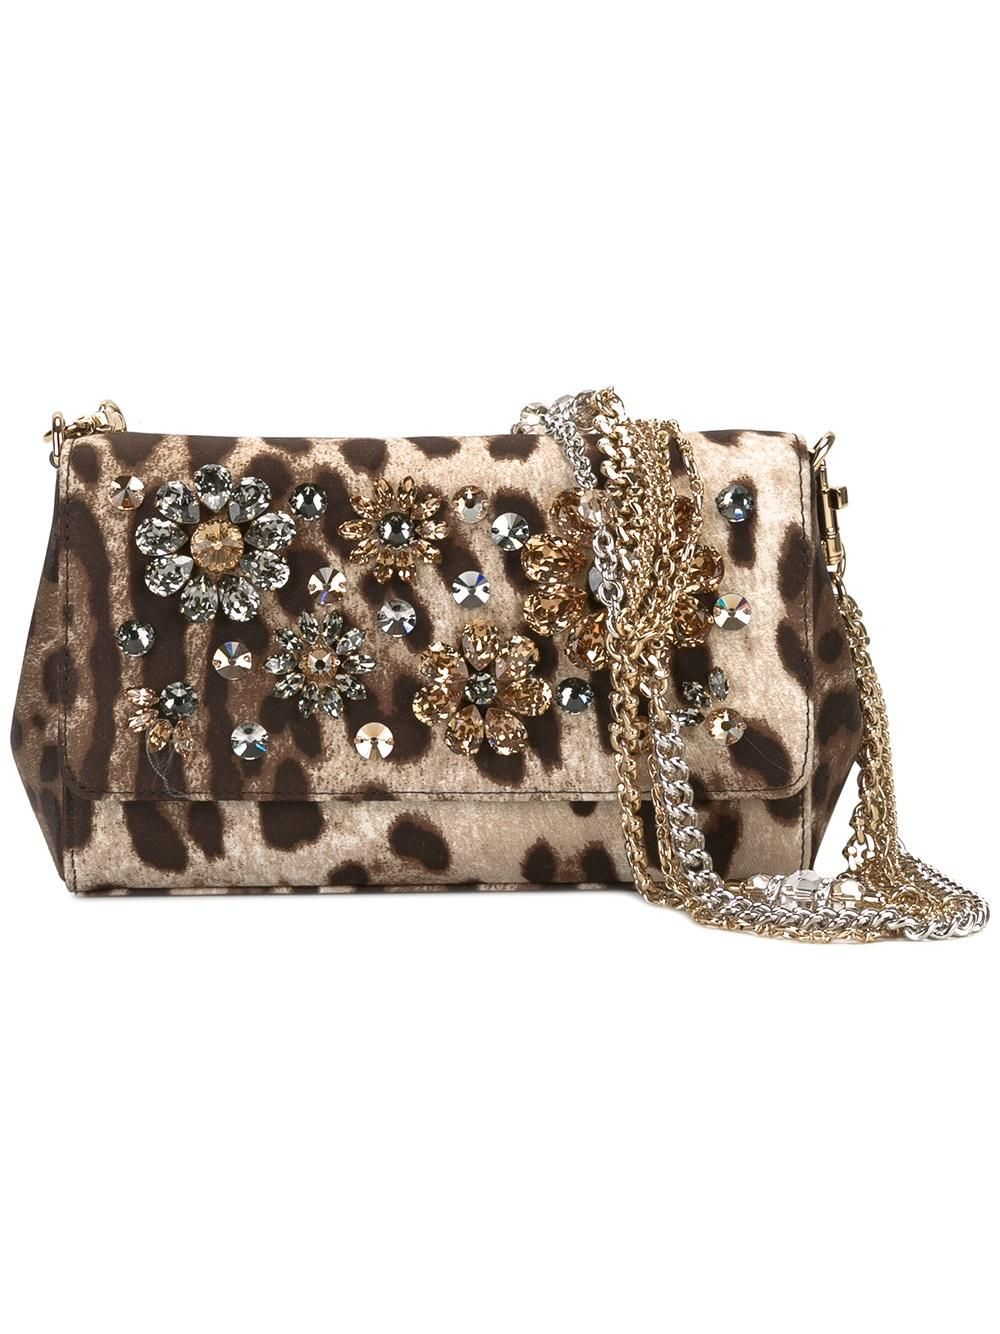 98305c198c88e8 Dolce & Gabbana Anna Clutch - Farfetch. Dolce & Gabbana Anna Clutch -  Farfetch Thigh Bag, Handbags Michael Kors ...